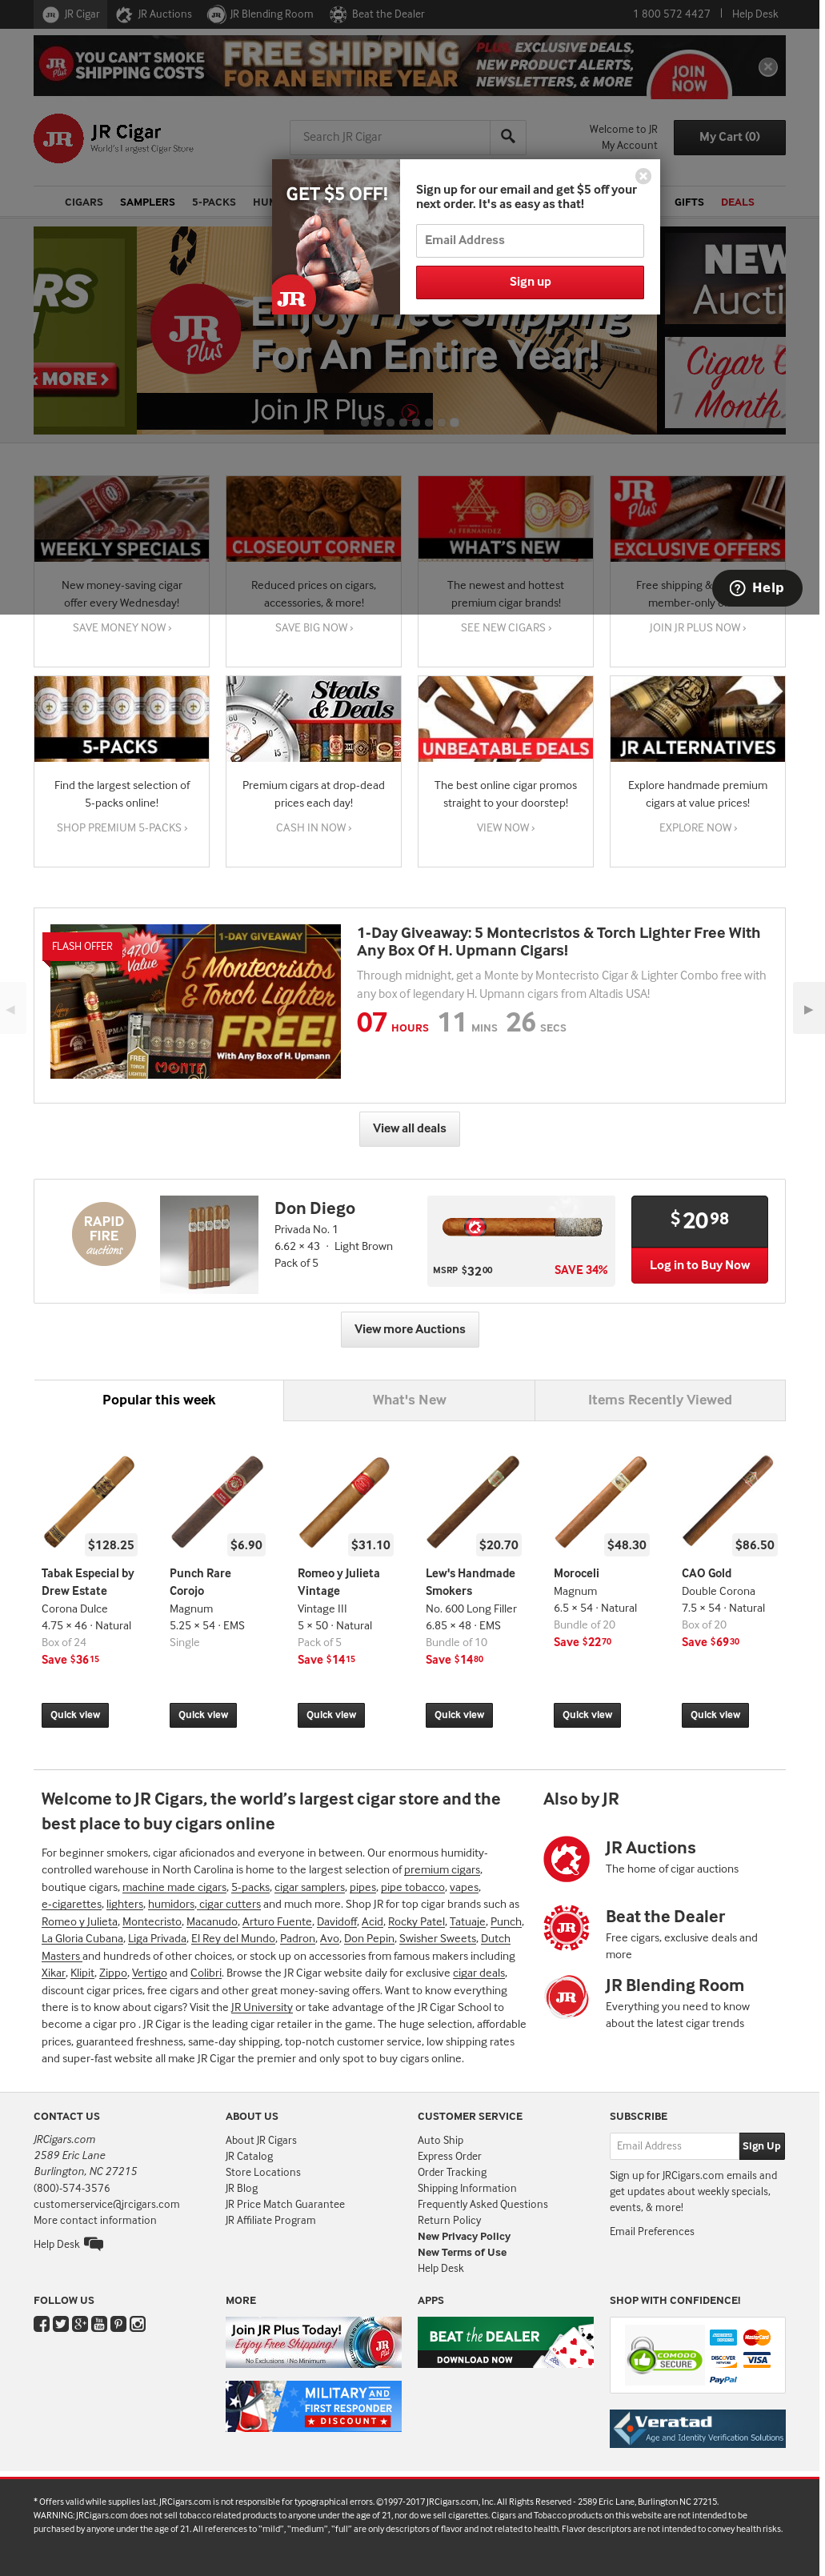 JR Cigars Competitors, Revenue and Employees - Owler Company